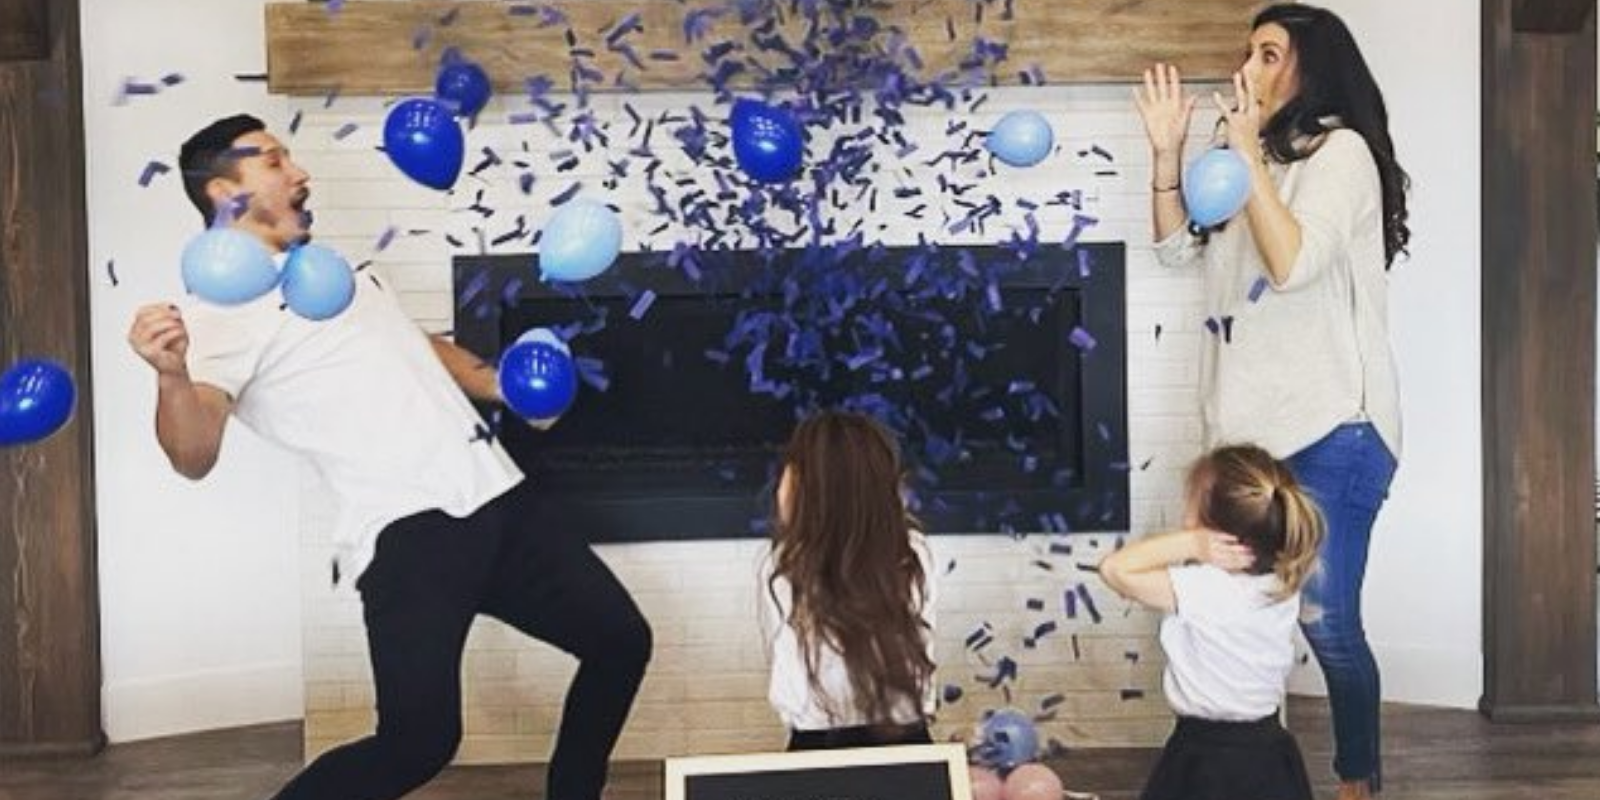 NHL star in hot water for 'sexism' after celebrating that he's having a baby boy